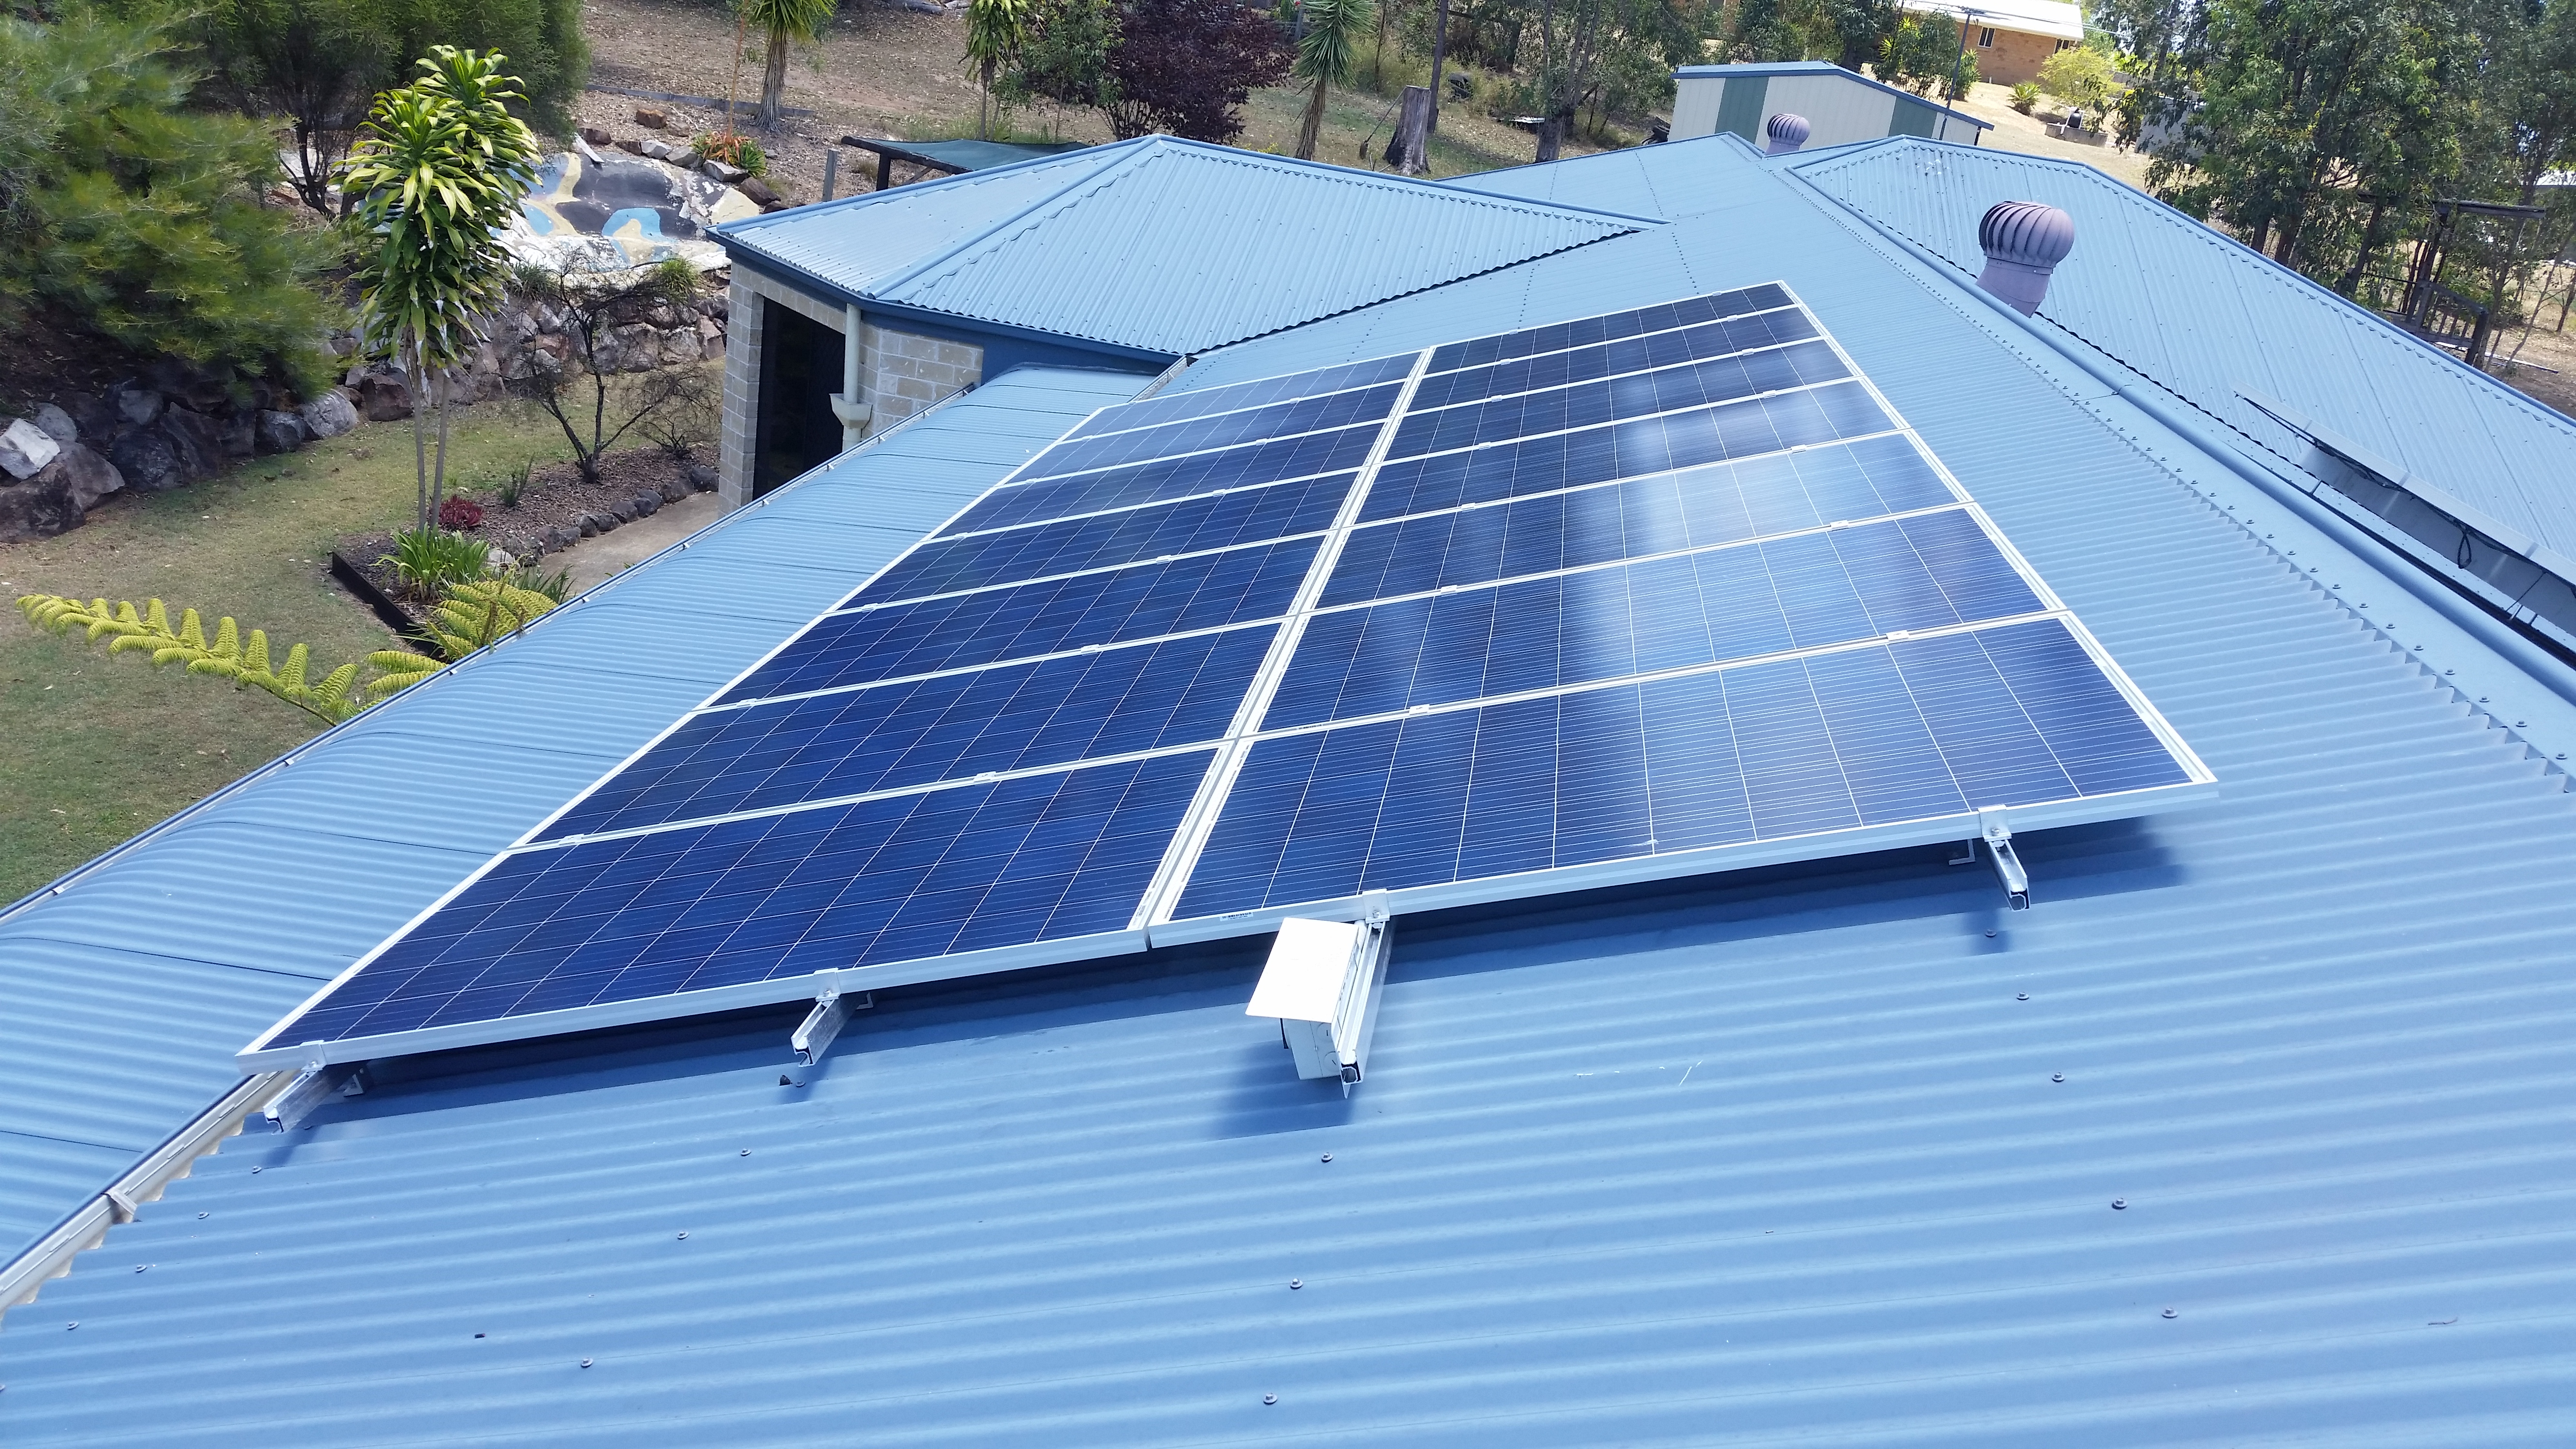 Krystal S Family Day Care 3 71kw Canadian Solar Panels